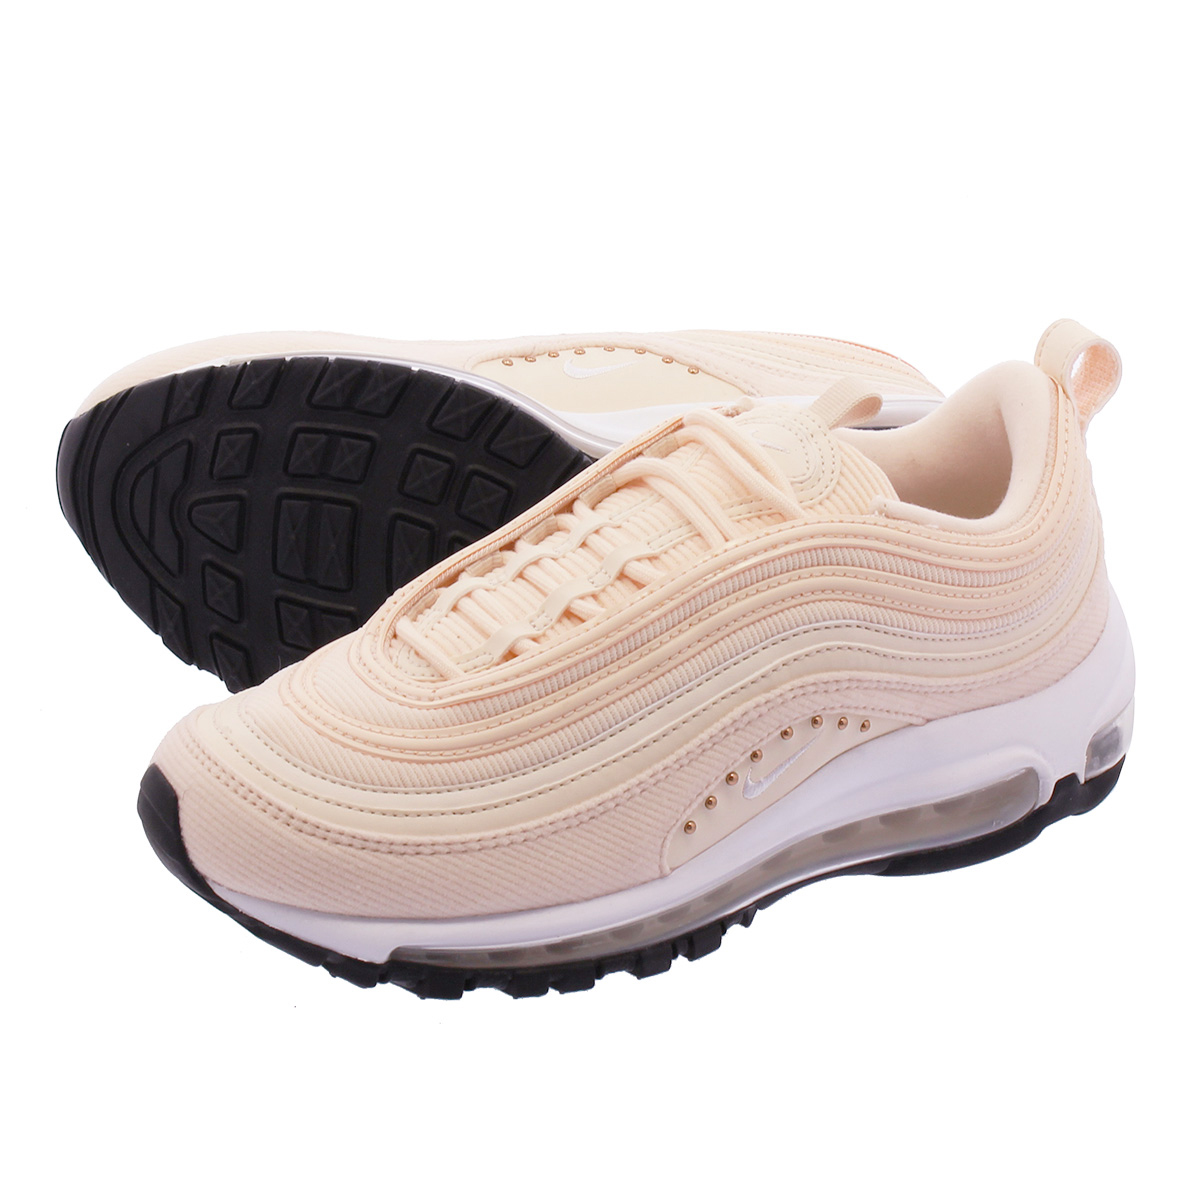 NIKE WMNS AIR MAX 97 SE ナイキ ウィメンズ エア マックス 97 SE GUAVA ICE/BLACK/WHITE aq4137-800